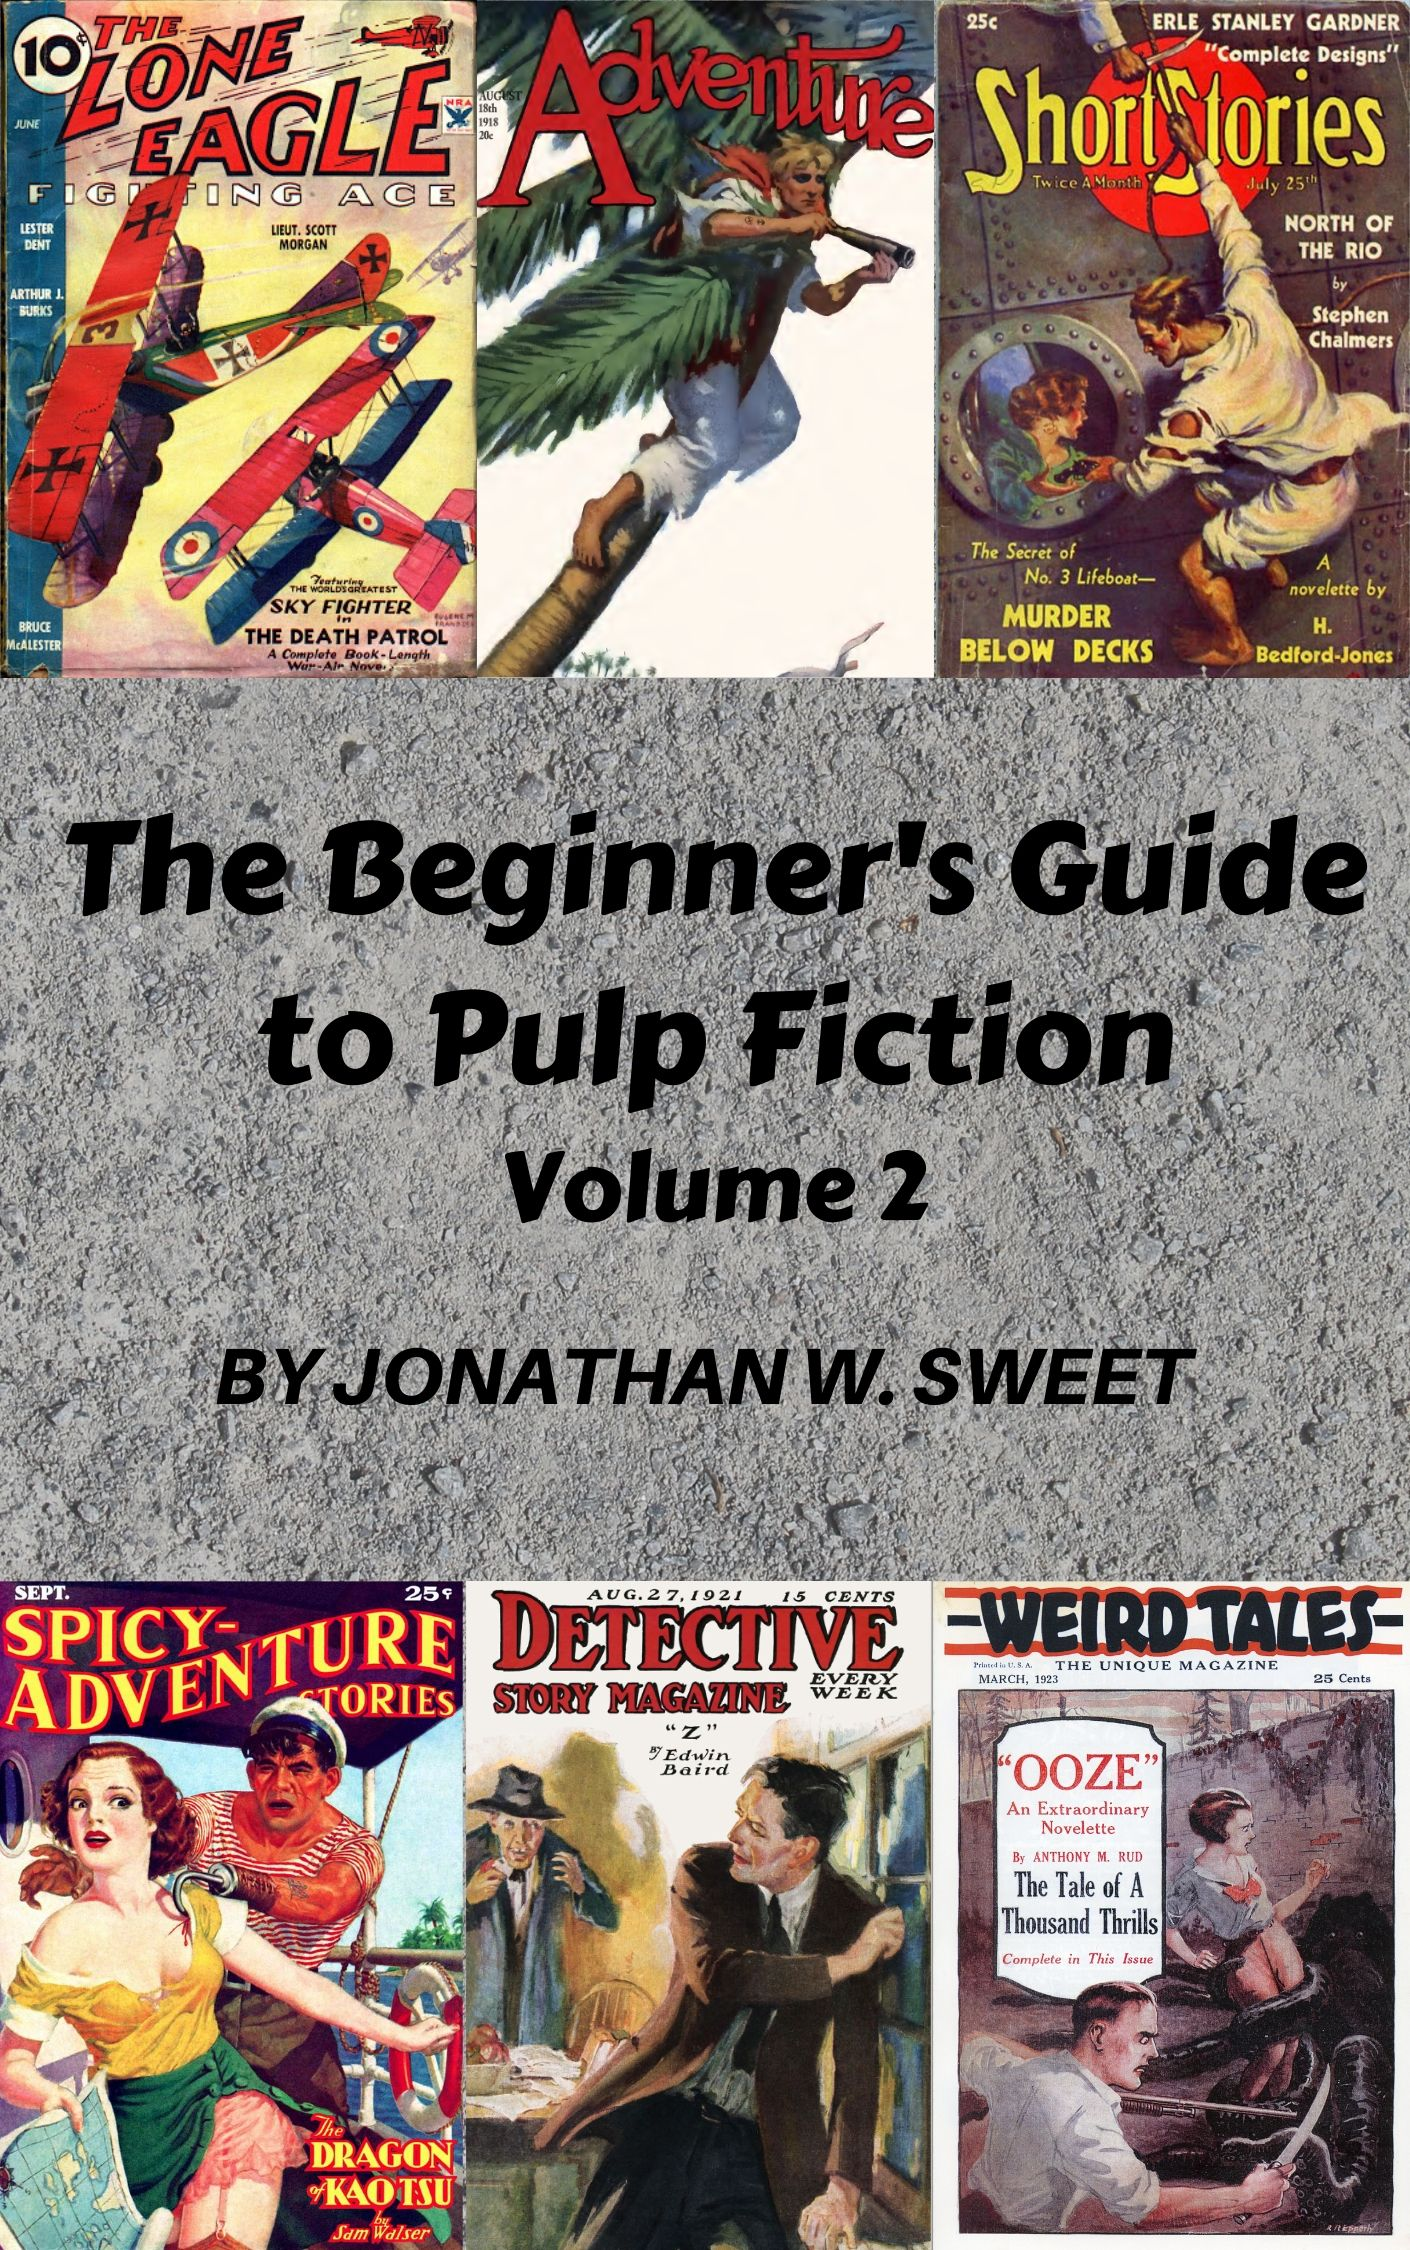 The Beginner's Guide to Pulp Fiction, Volume 2